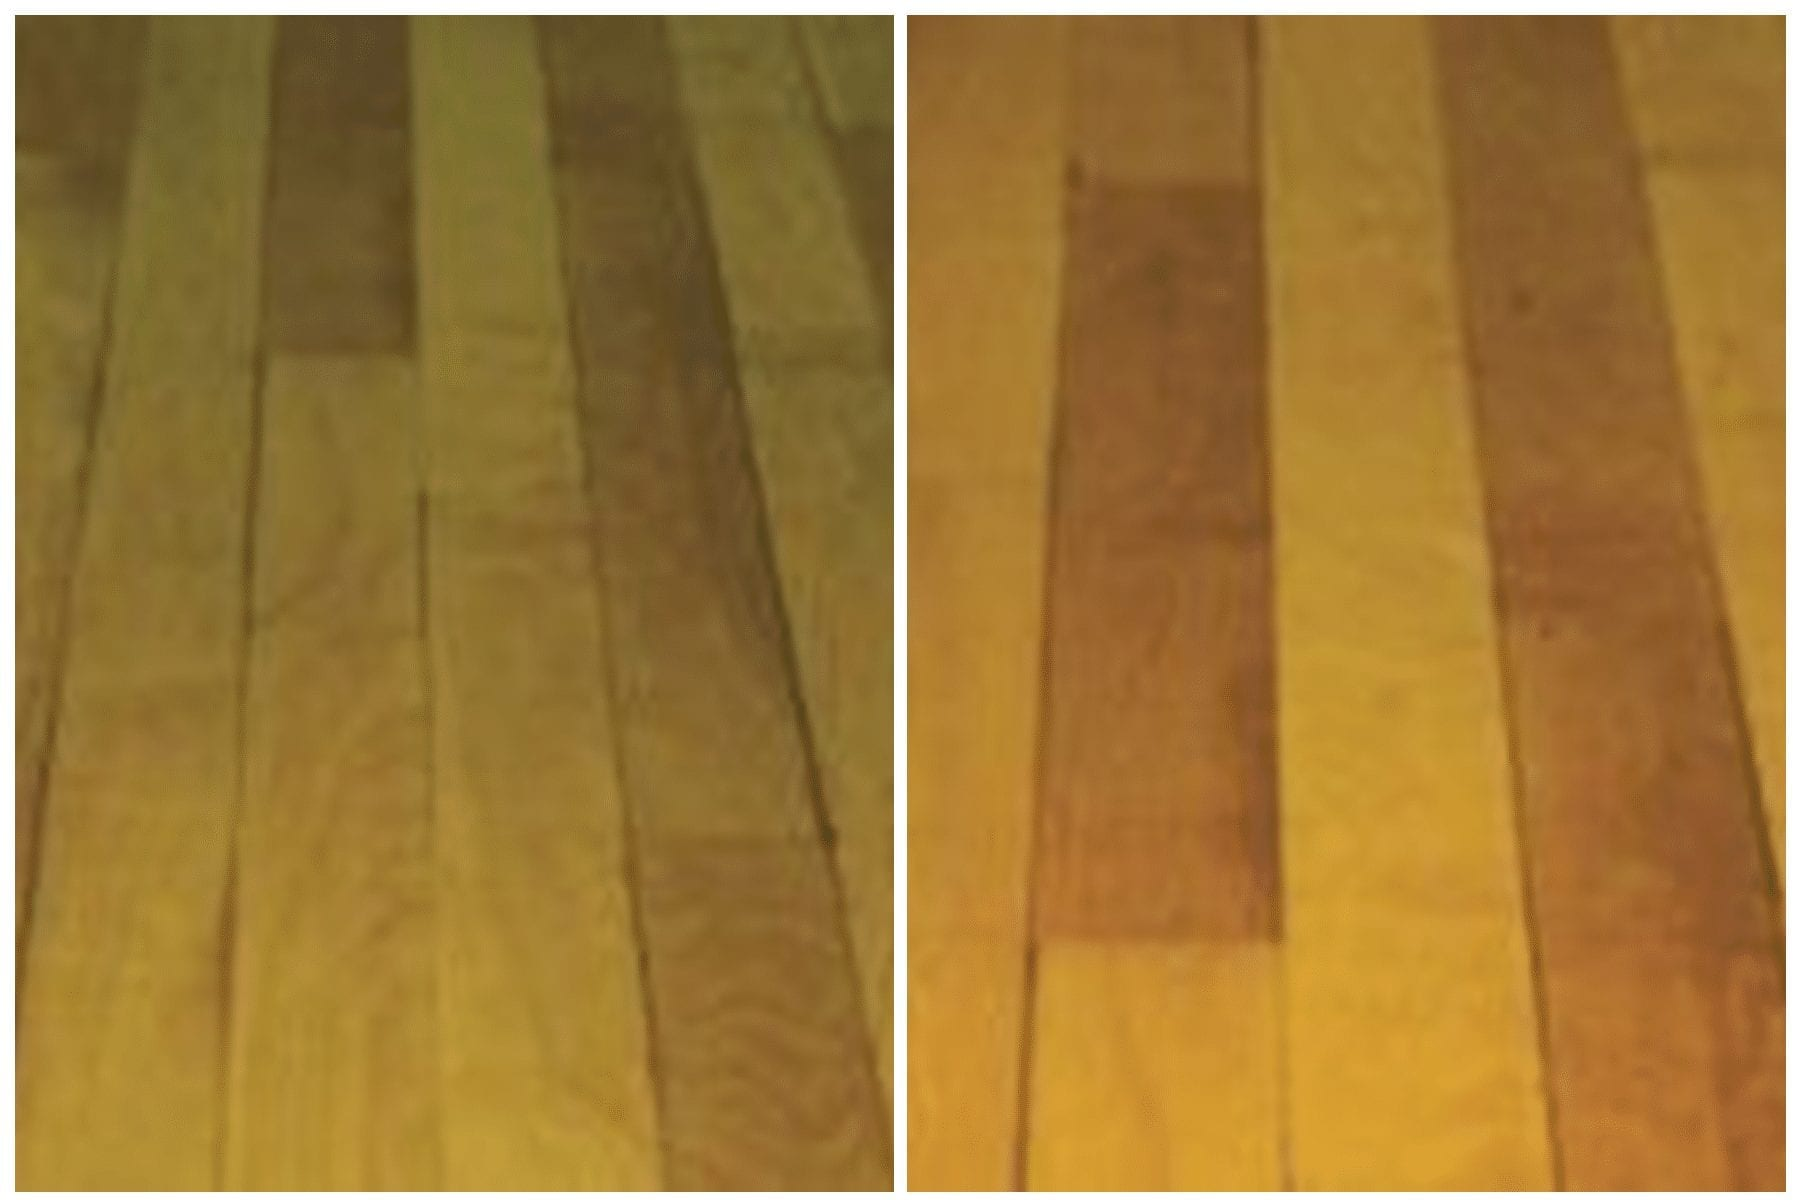 Woodfloor Cleaning and Coating Dallas, TX